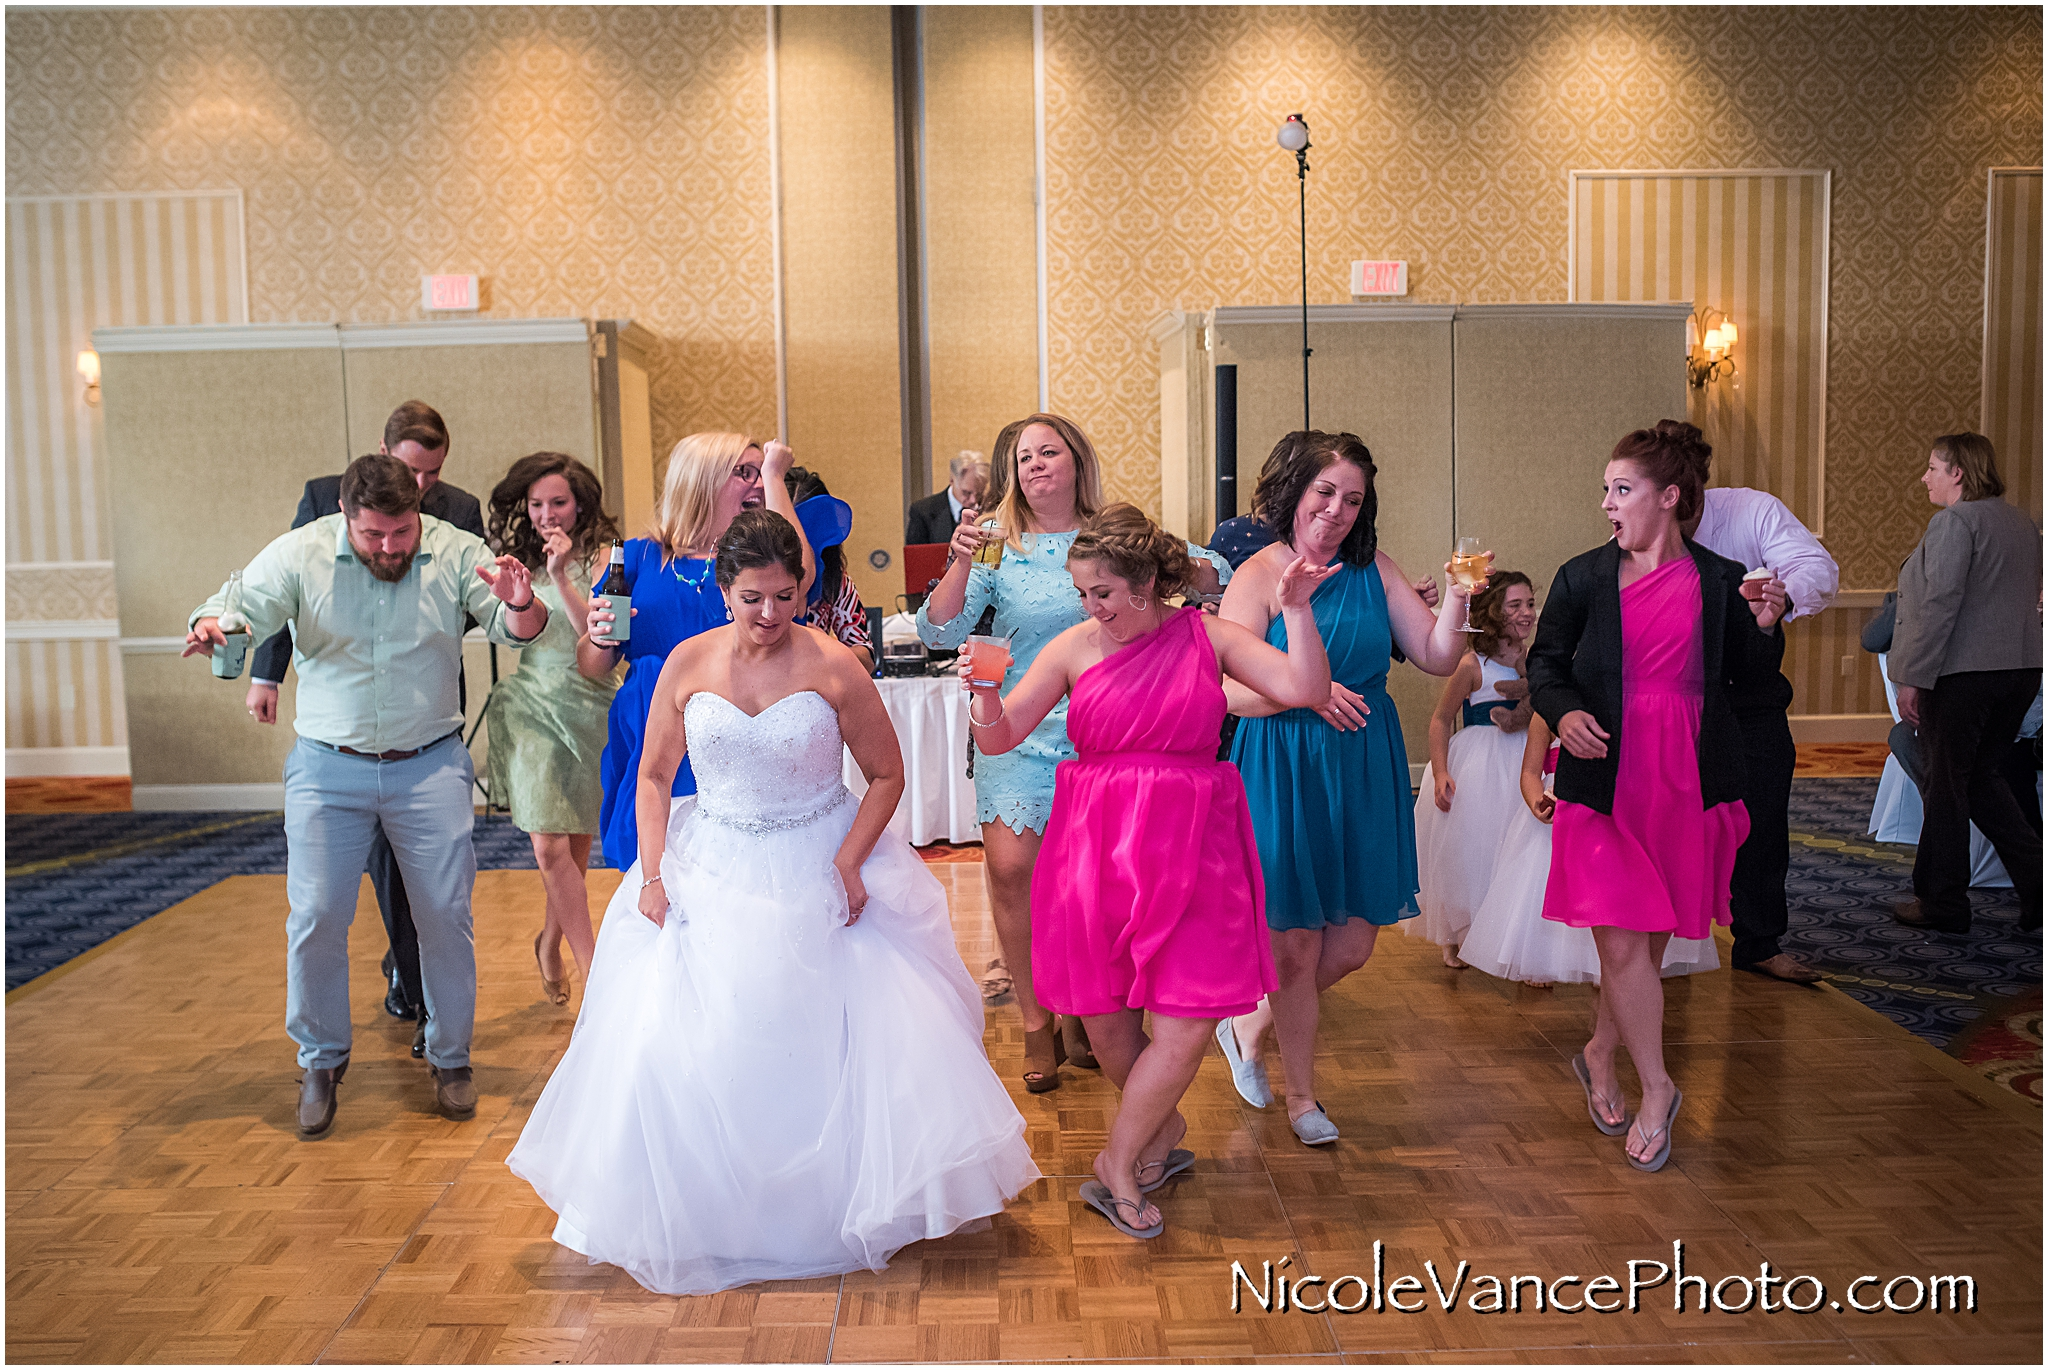 Dancing at the reception at Virginia Crossings.